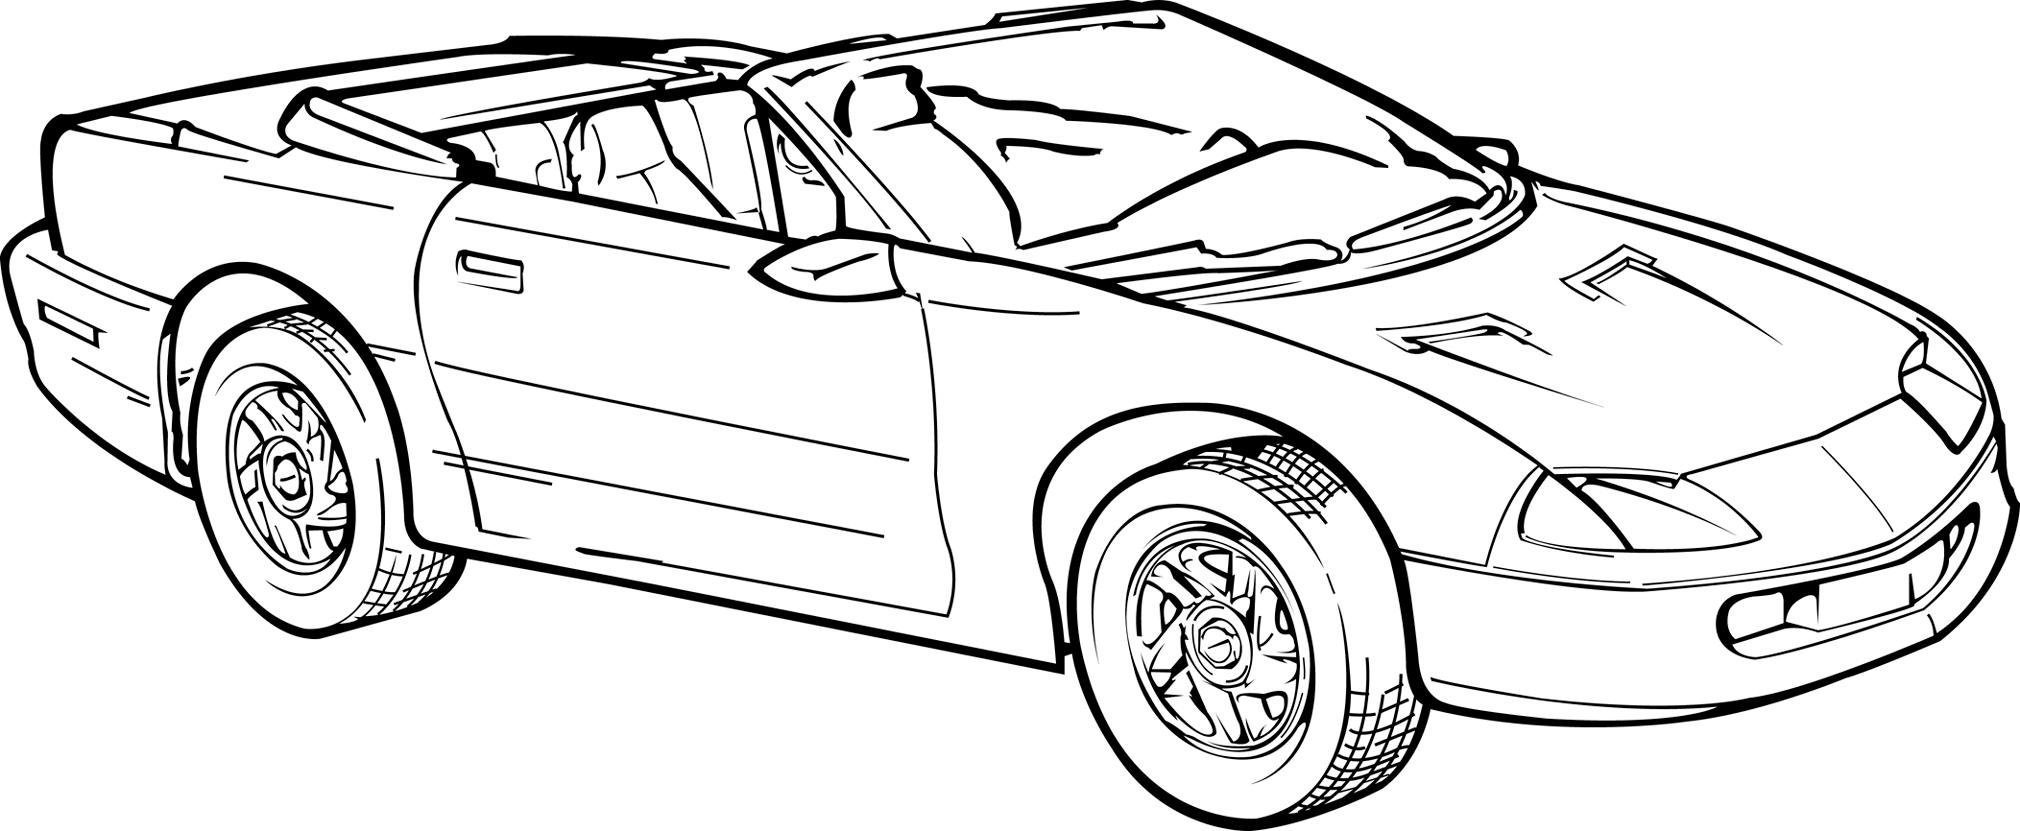 Basic camaro illustration by steve126a on deviantart for Camaro coloring page